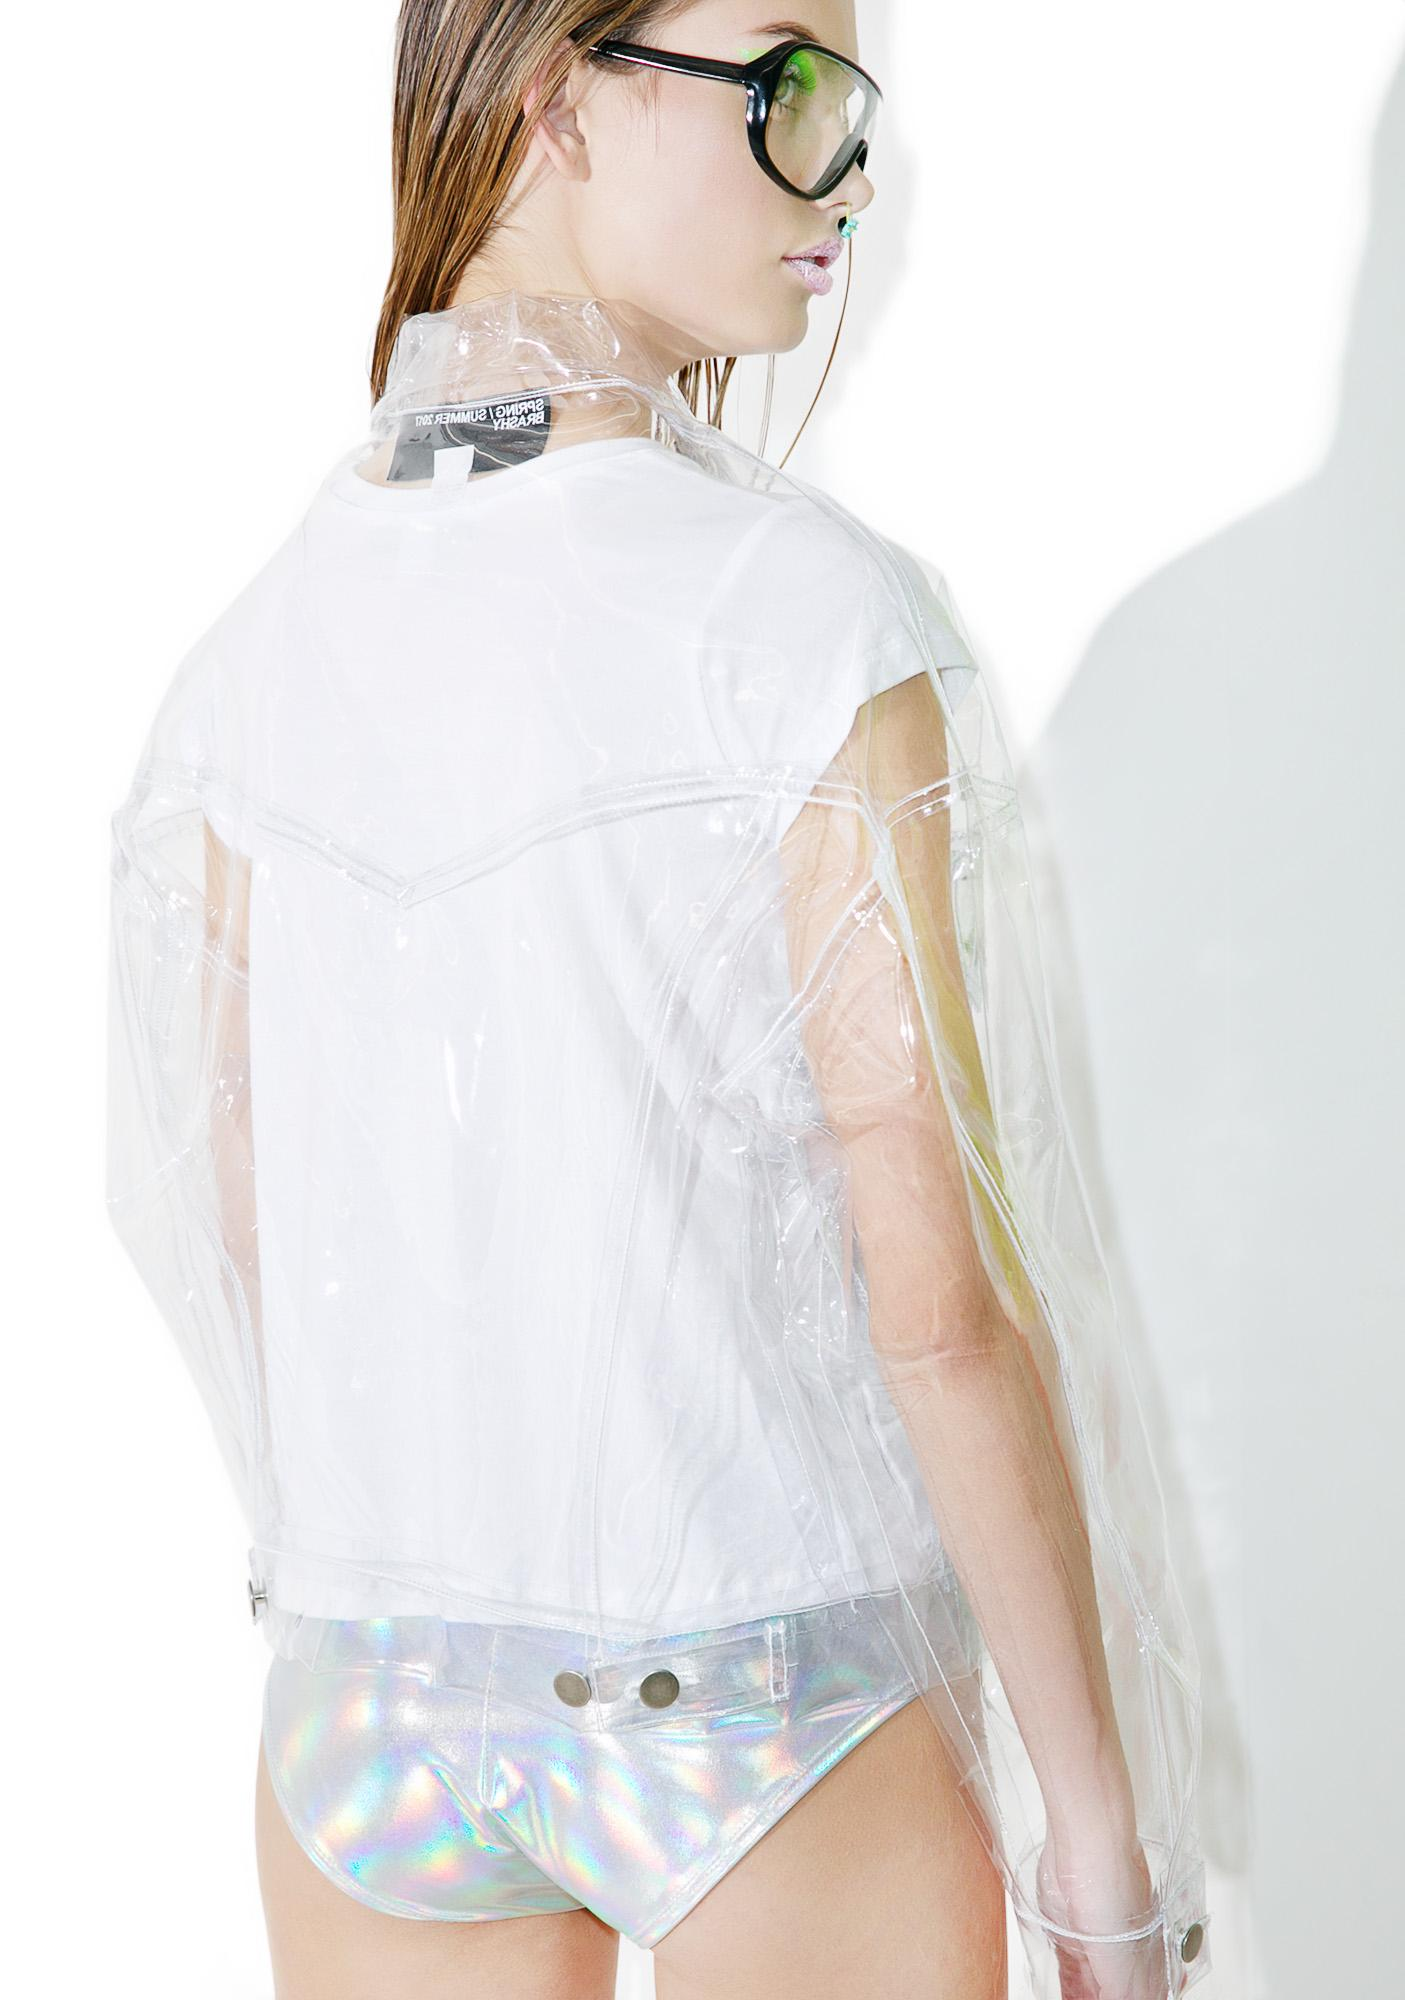 Brashy Crystalline Clear Jacket